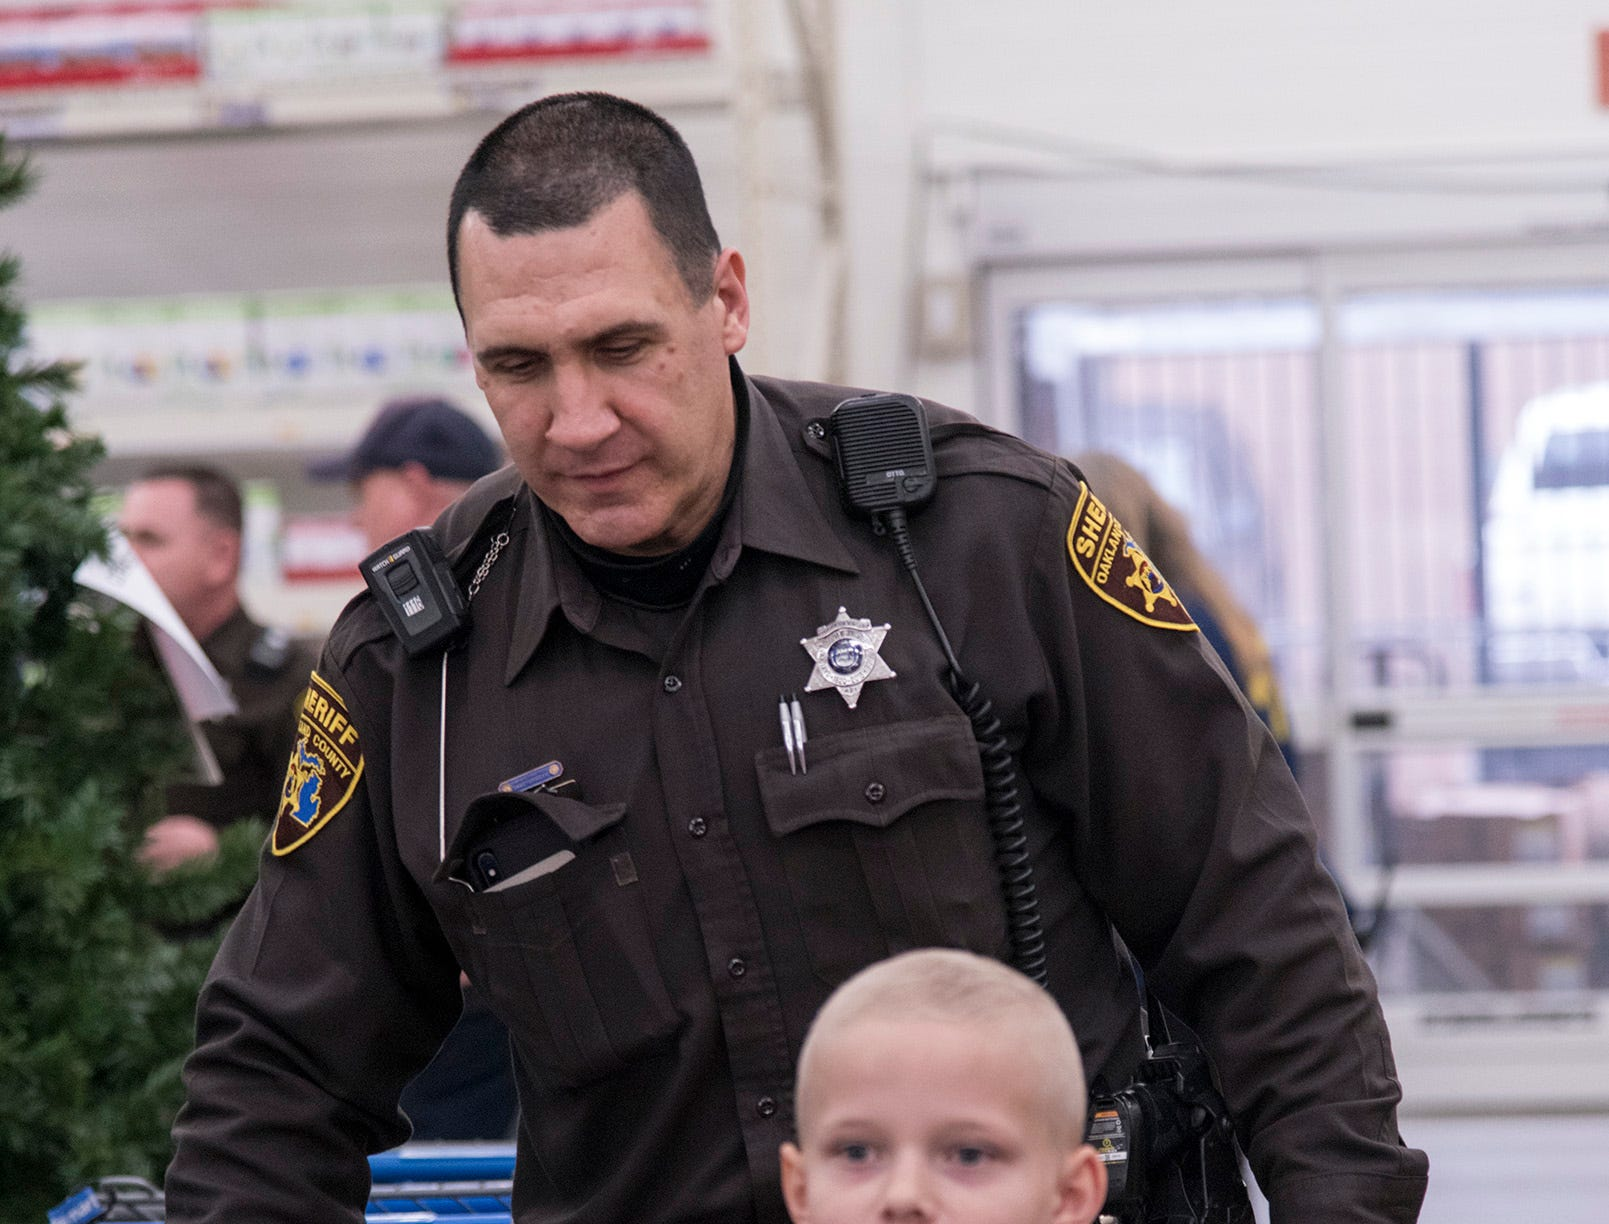 Oakland County Sheriff Deputy Tom Biggers and nine year old Jayden Paradis head out for some holiday shopping.